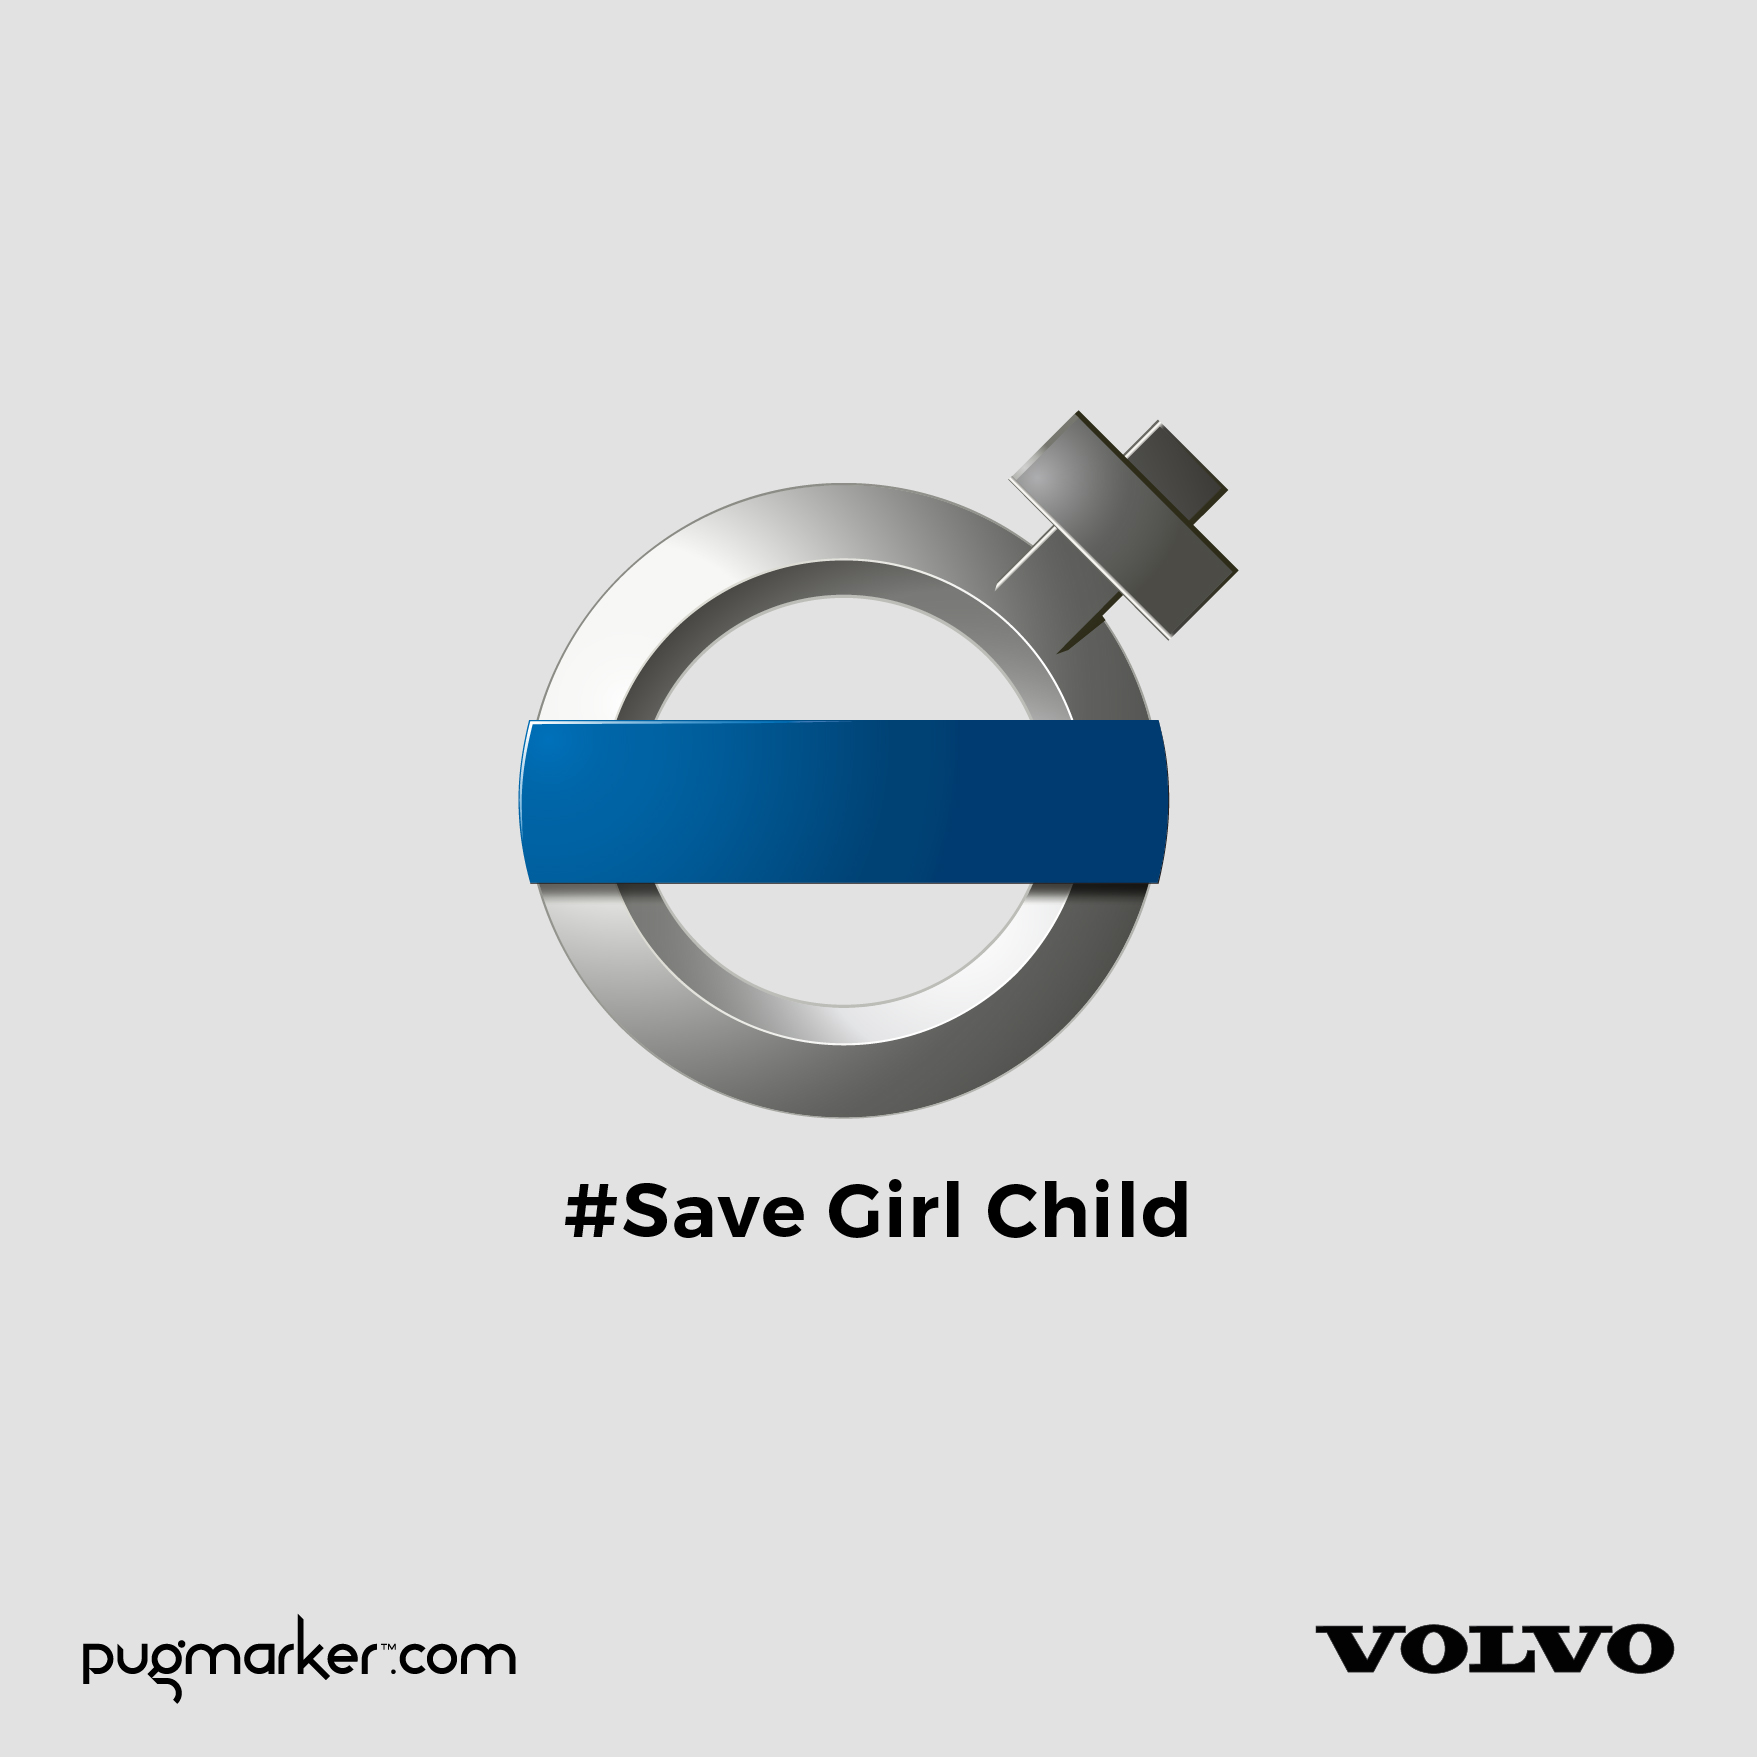 Volvo - Save Girl Child